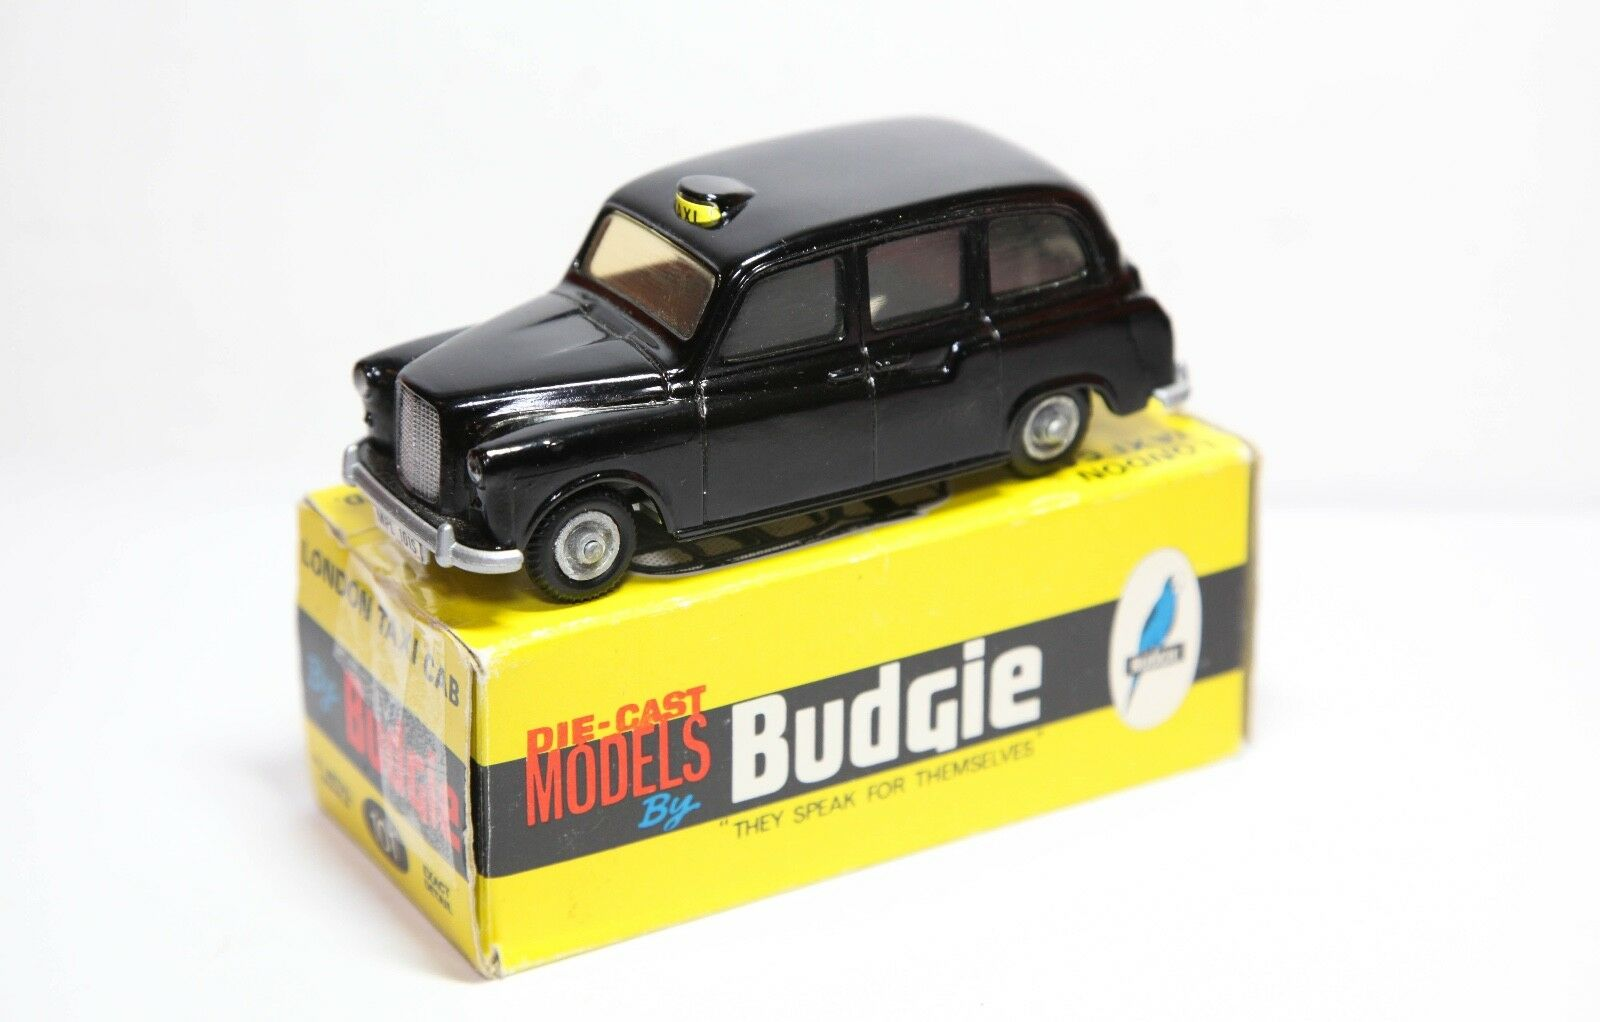 Budgie 101 Austin London Taxi Cab In Original Box - Near Mint Vintage Original